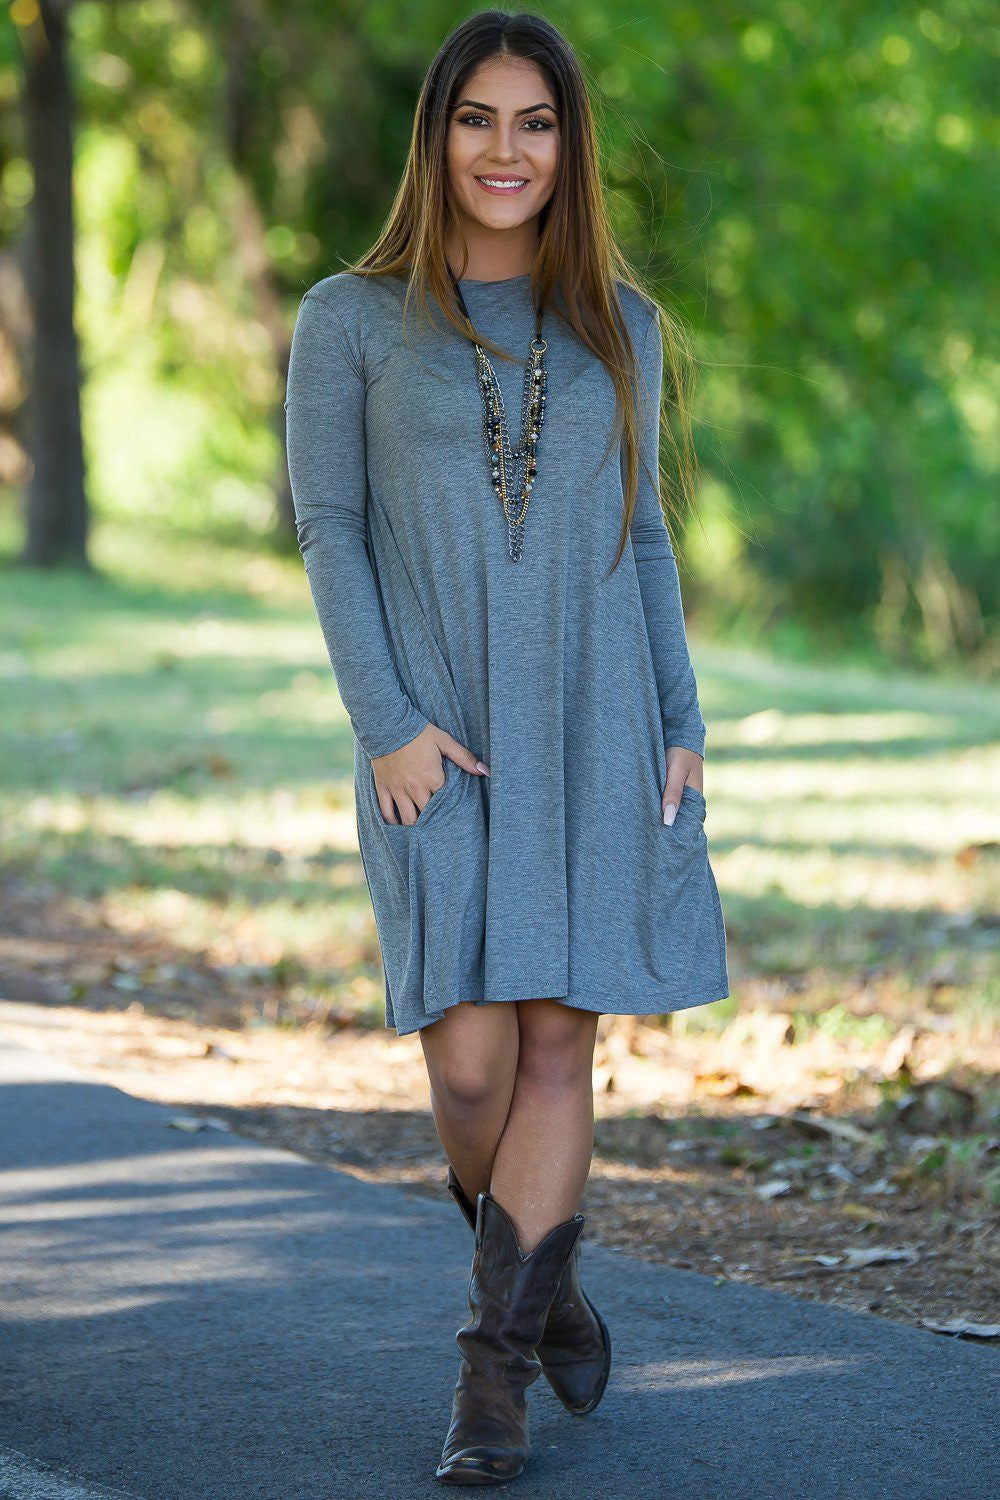 Piko Long Sleeve Swing Dress - Heather Grey - Piko Clothing - 2